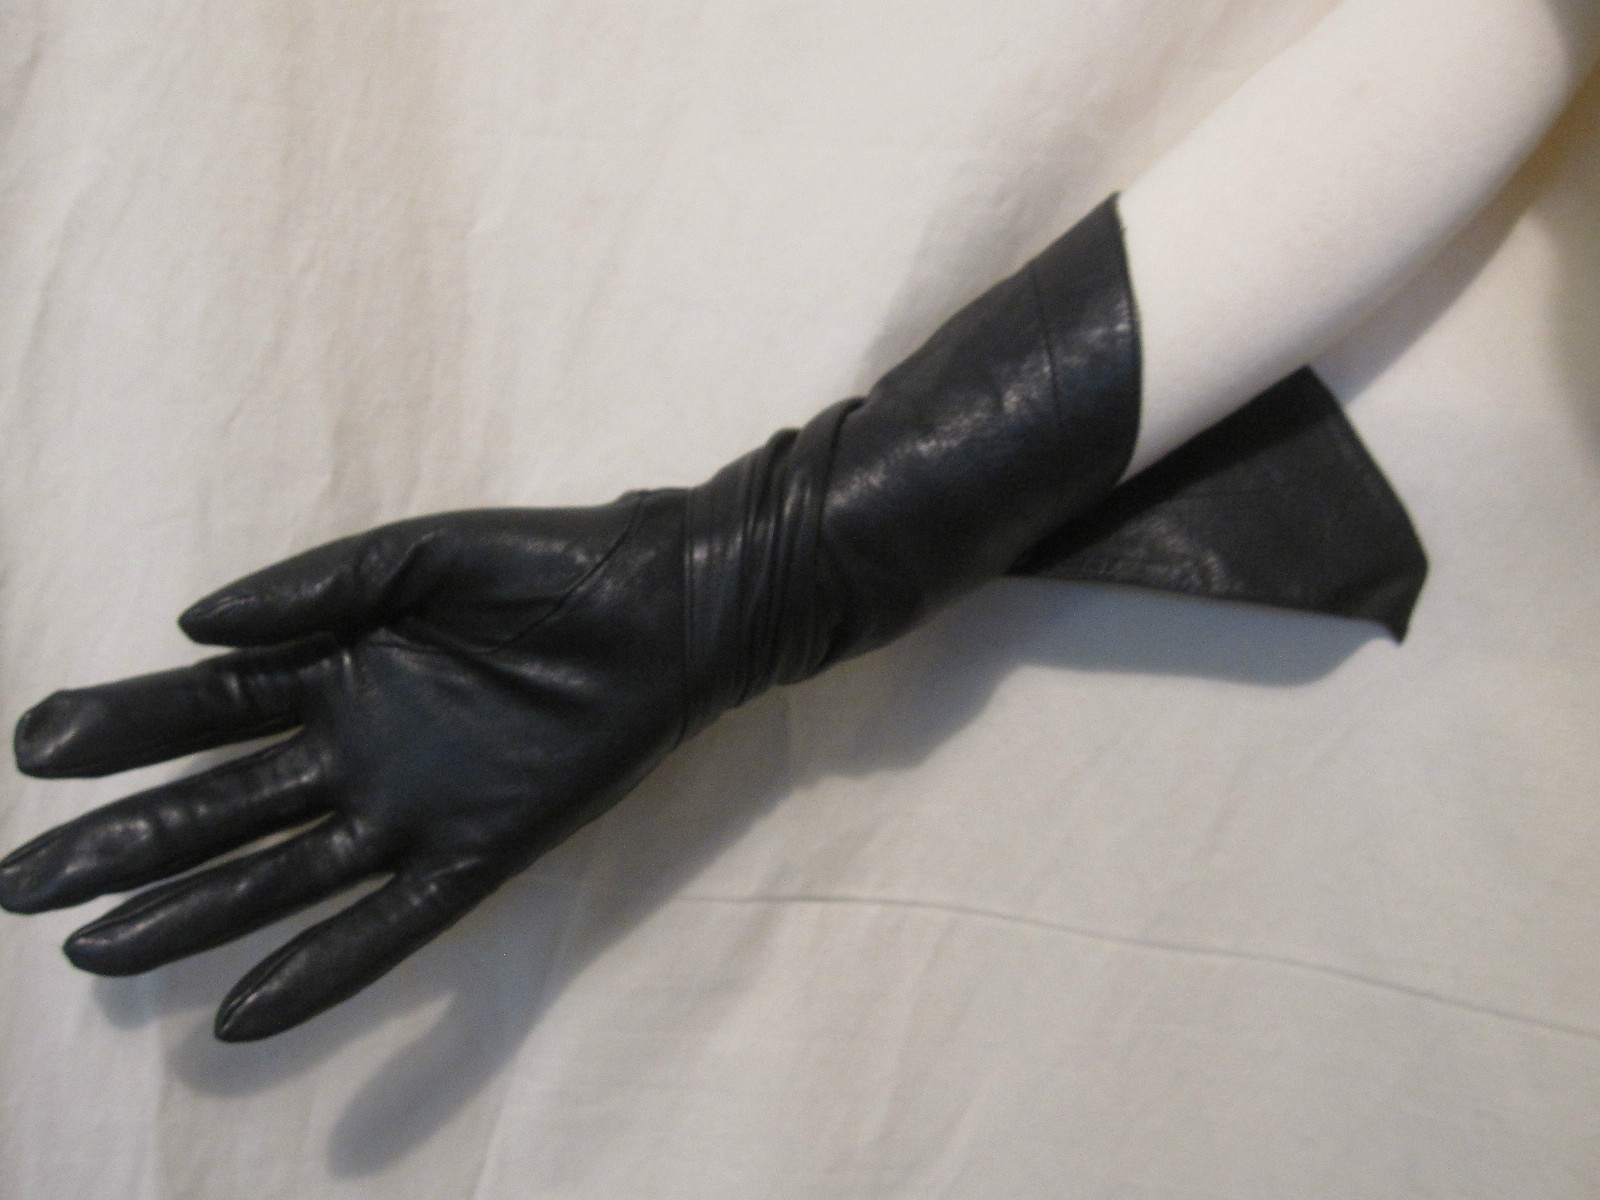 Buy leather gauntlet gloves - These Rare Alaia Black Leather Gauntlet Gloves Sold For An Impressive 305 00 They Used Gloves Were A Size 7 5 They Remind Me Of Something A Super Heroine